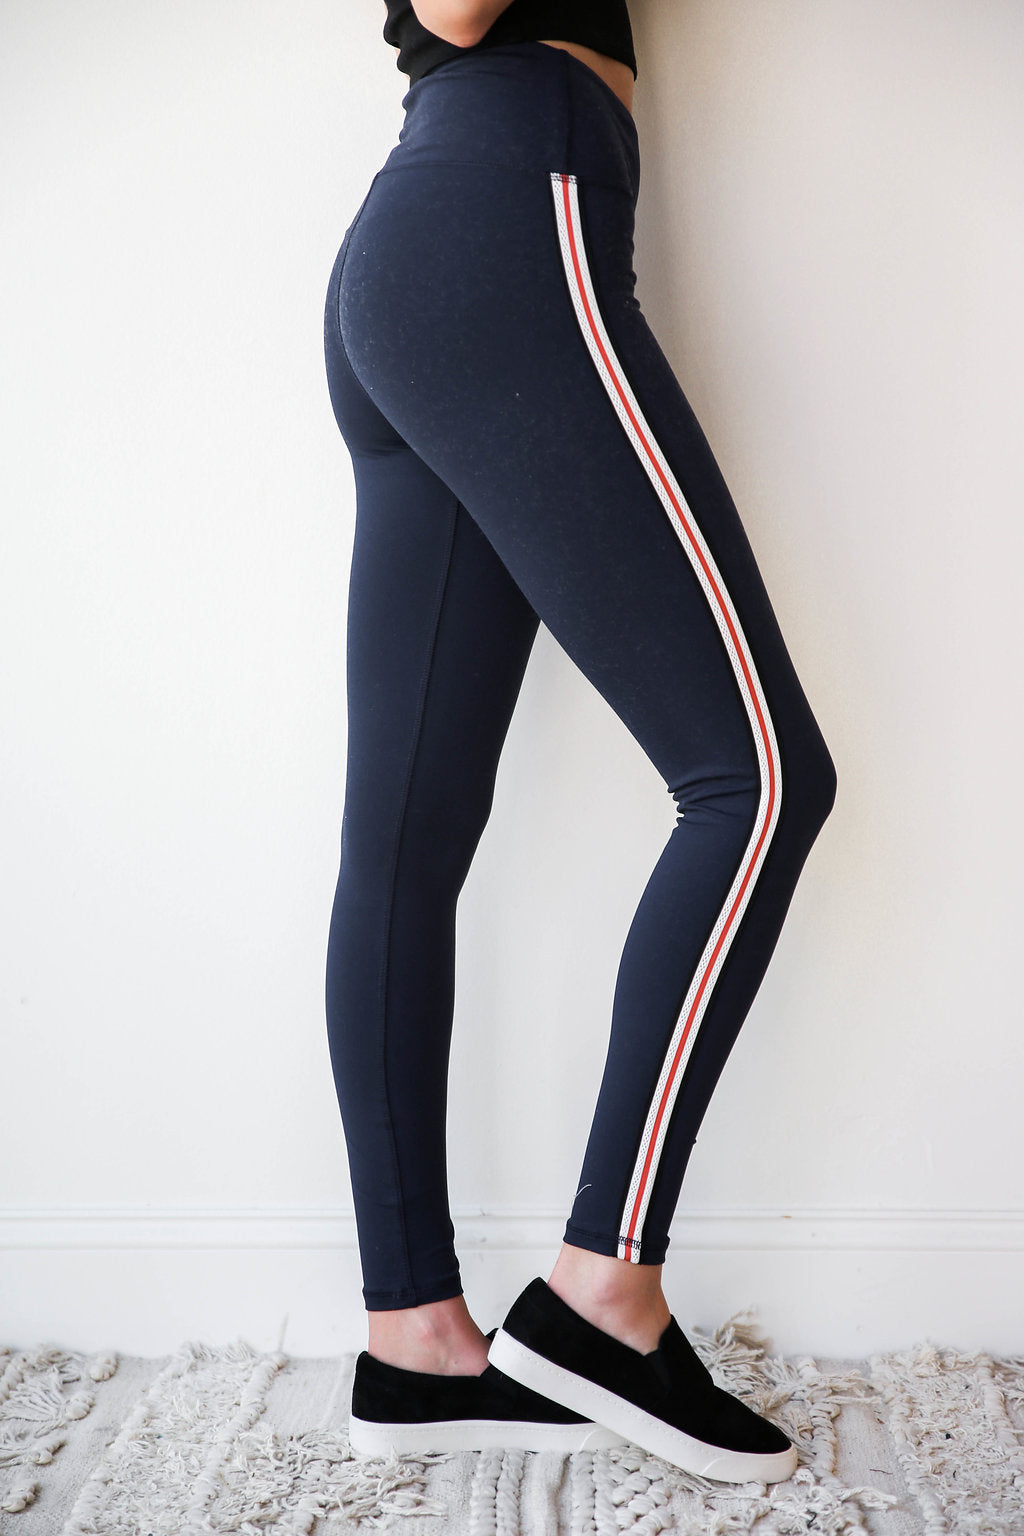 American stripe leggings